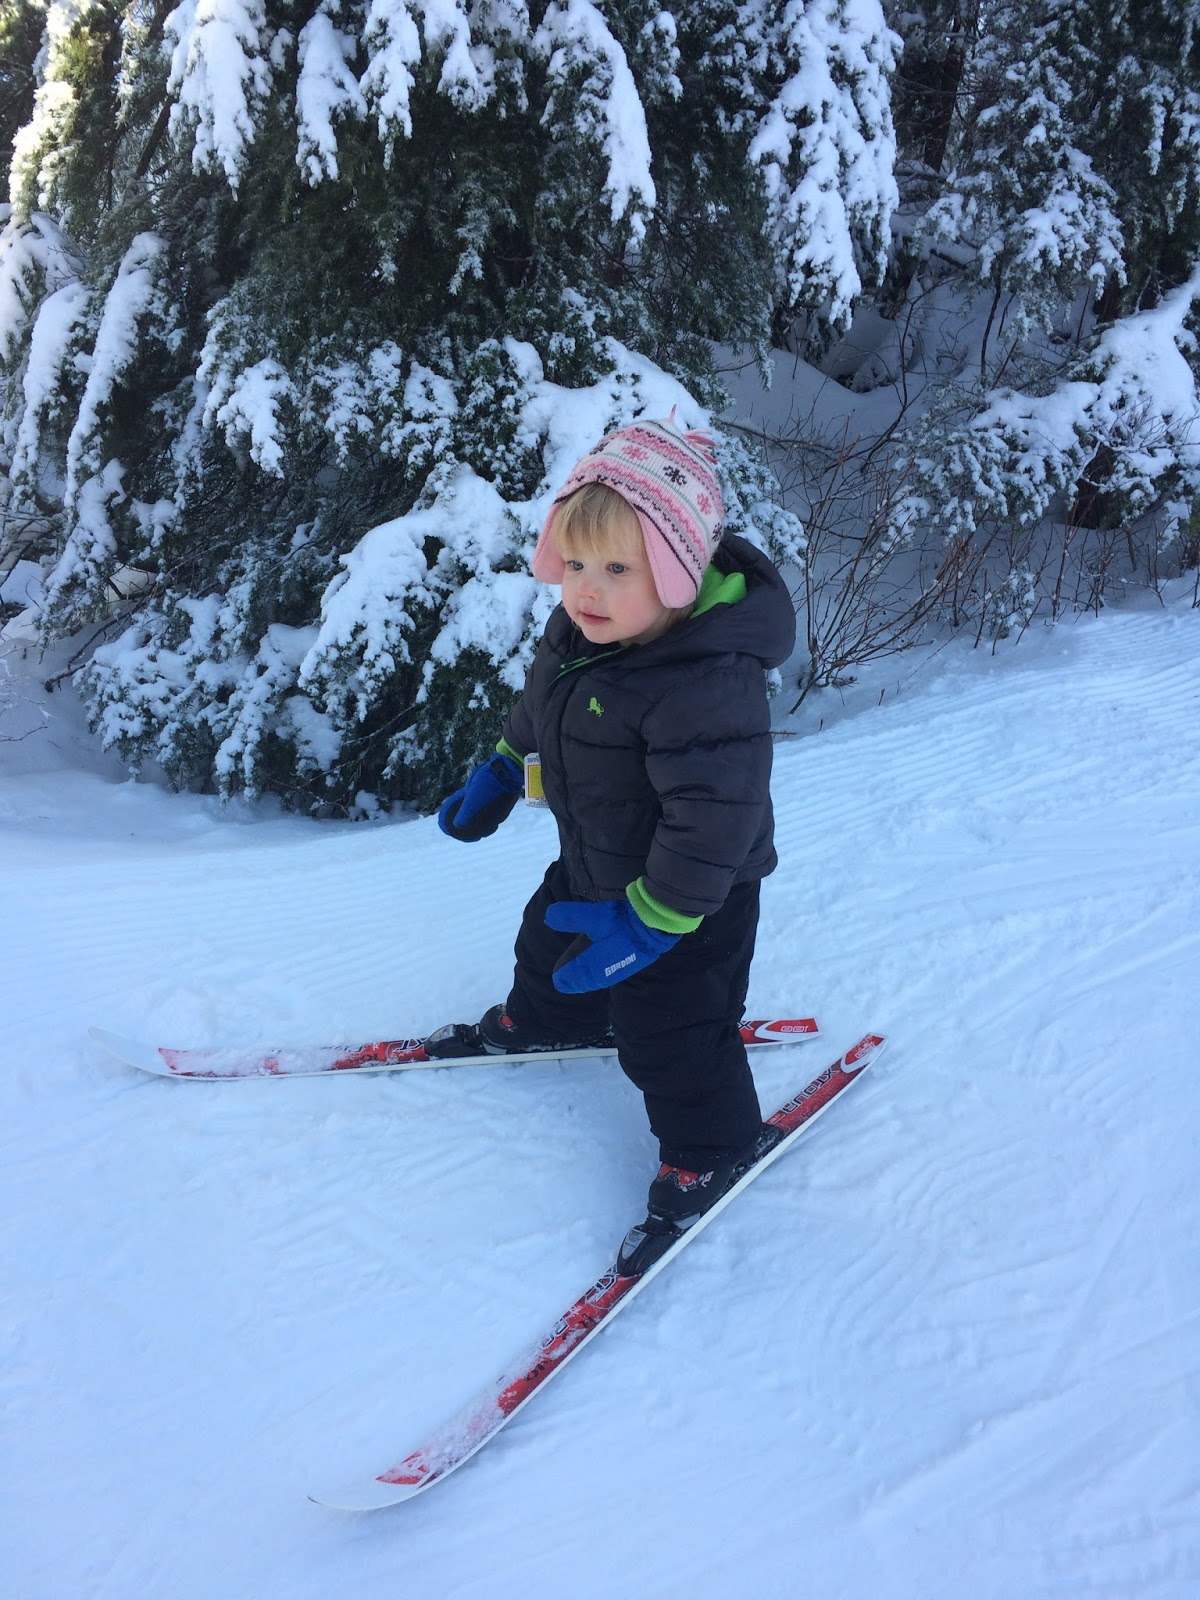 Cross Country Skiing With A Toddler 5 Tips Born To Be Adventurous Ski Tow Harness Our Daughter Fell Few Times But Was Still Totally Stoked Keep Im Sure That Some Other Day She Might Not So Gung Ho